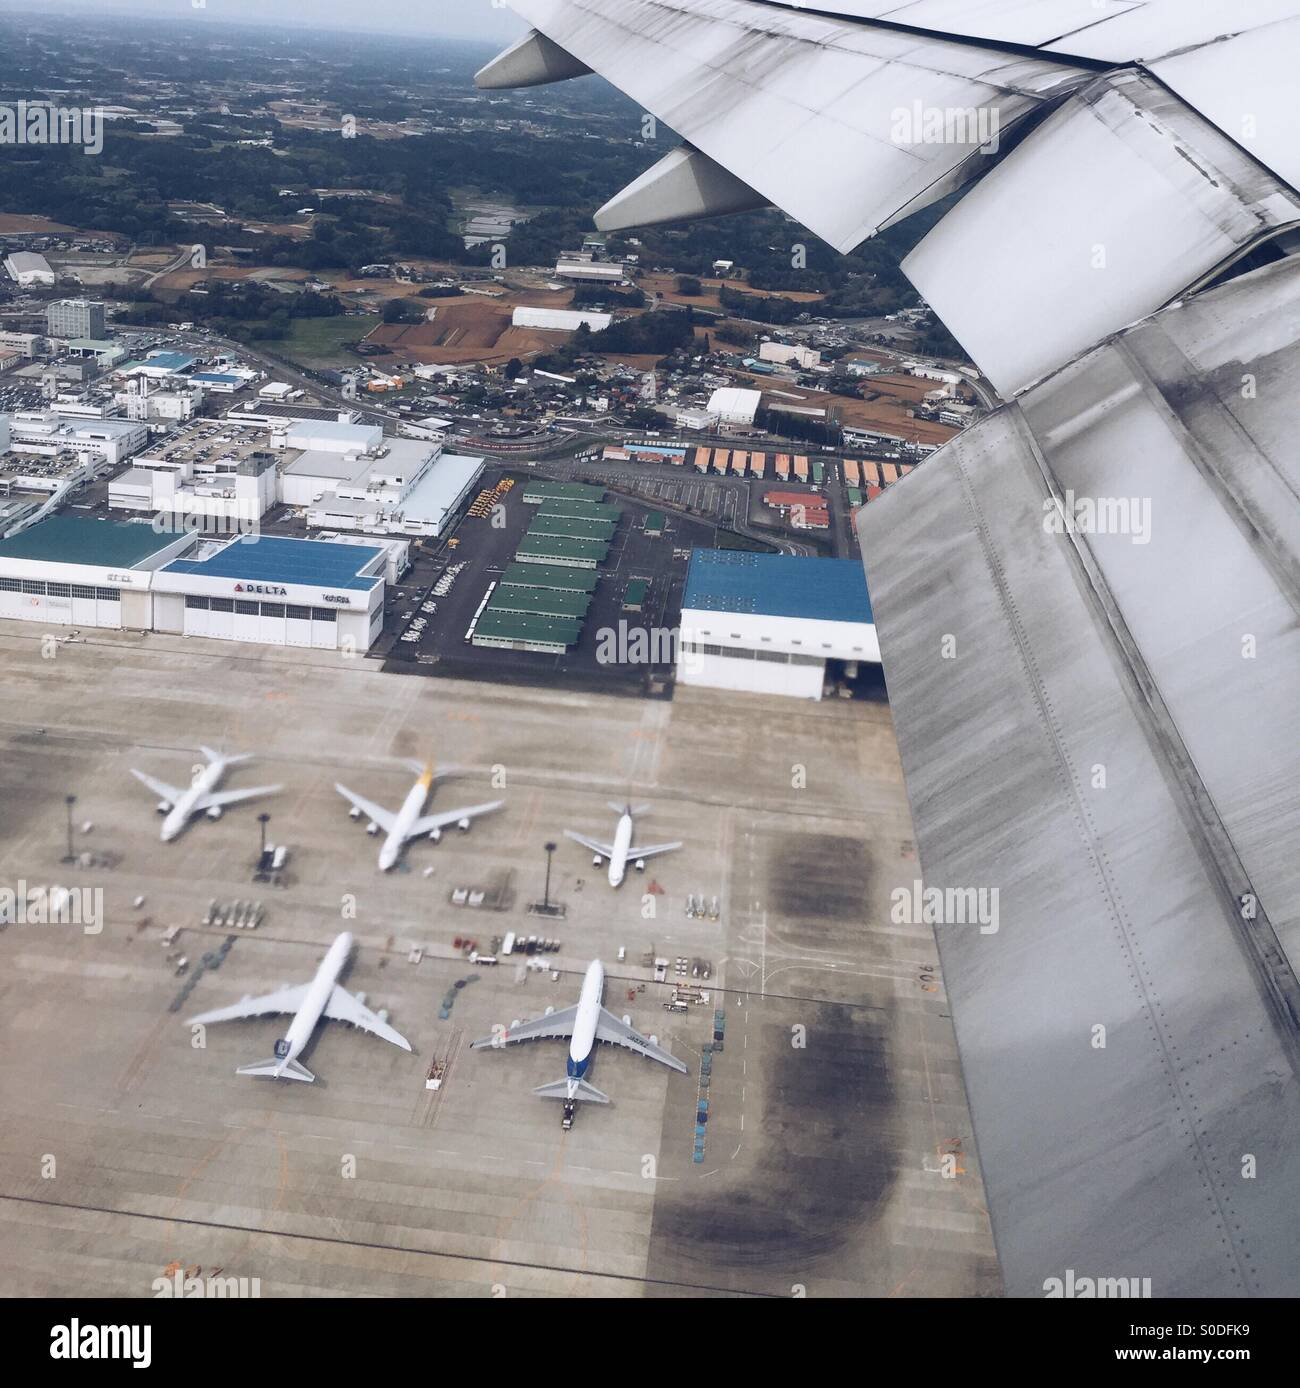 Aerial view of airplane wing, warehouses and airplanes on the ground at Narita International Airport in Chiba Prefecture, Stock Photo